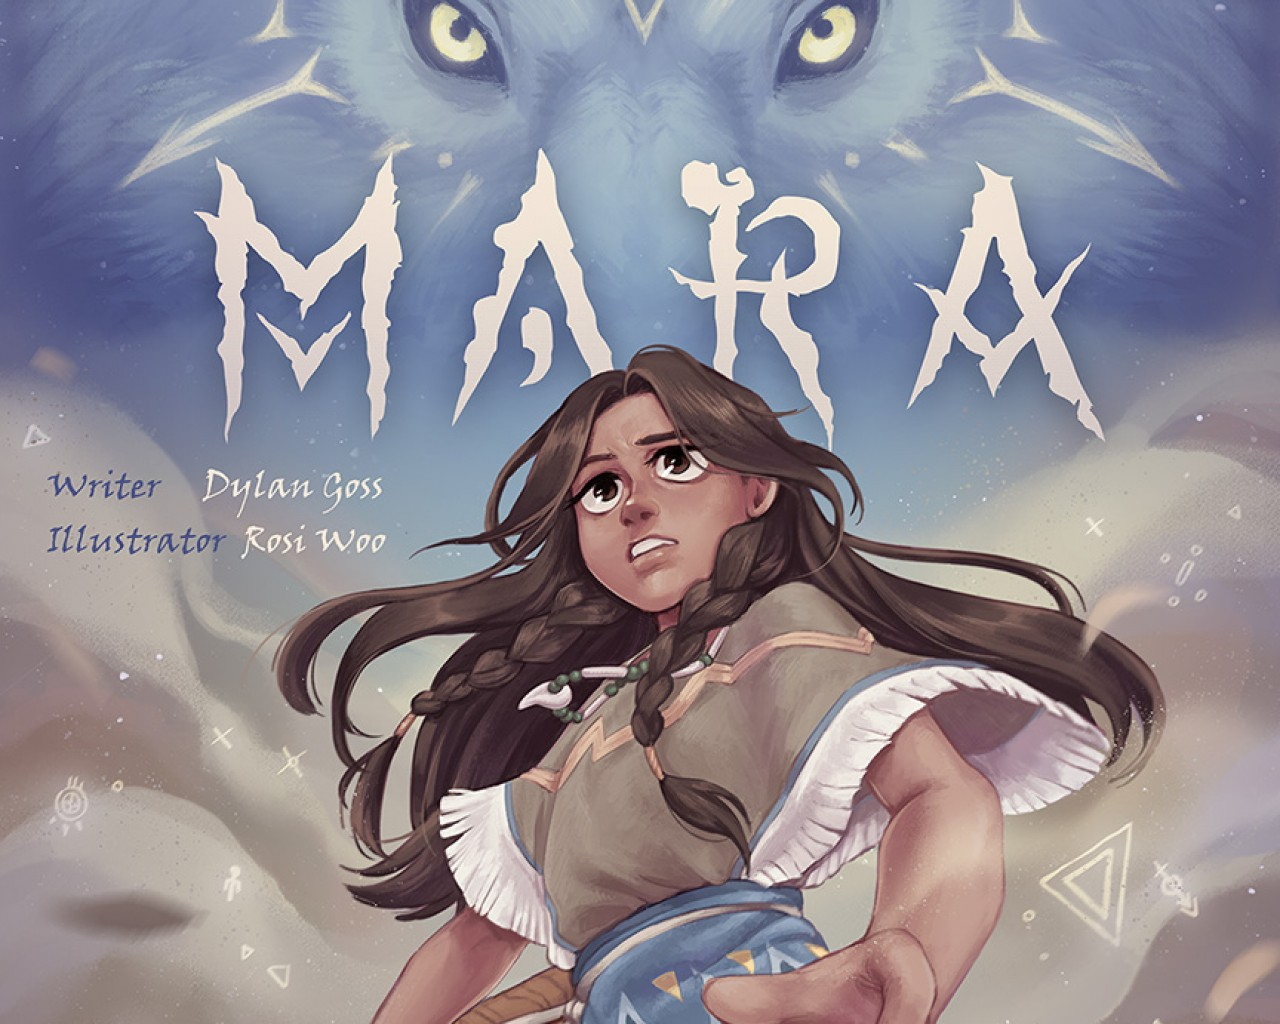 Poster Image for Mara